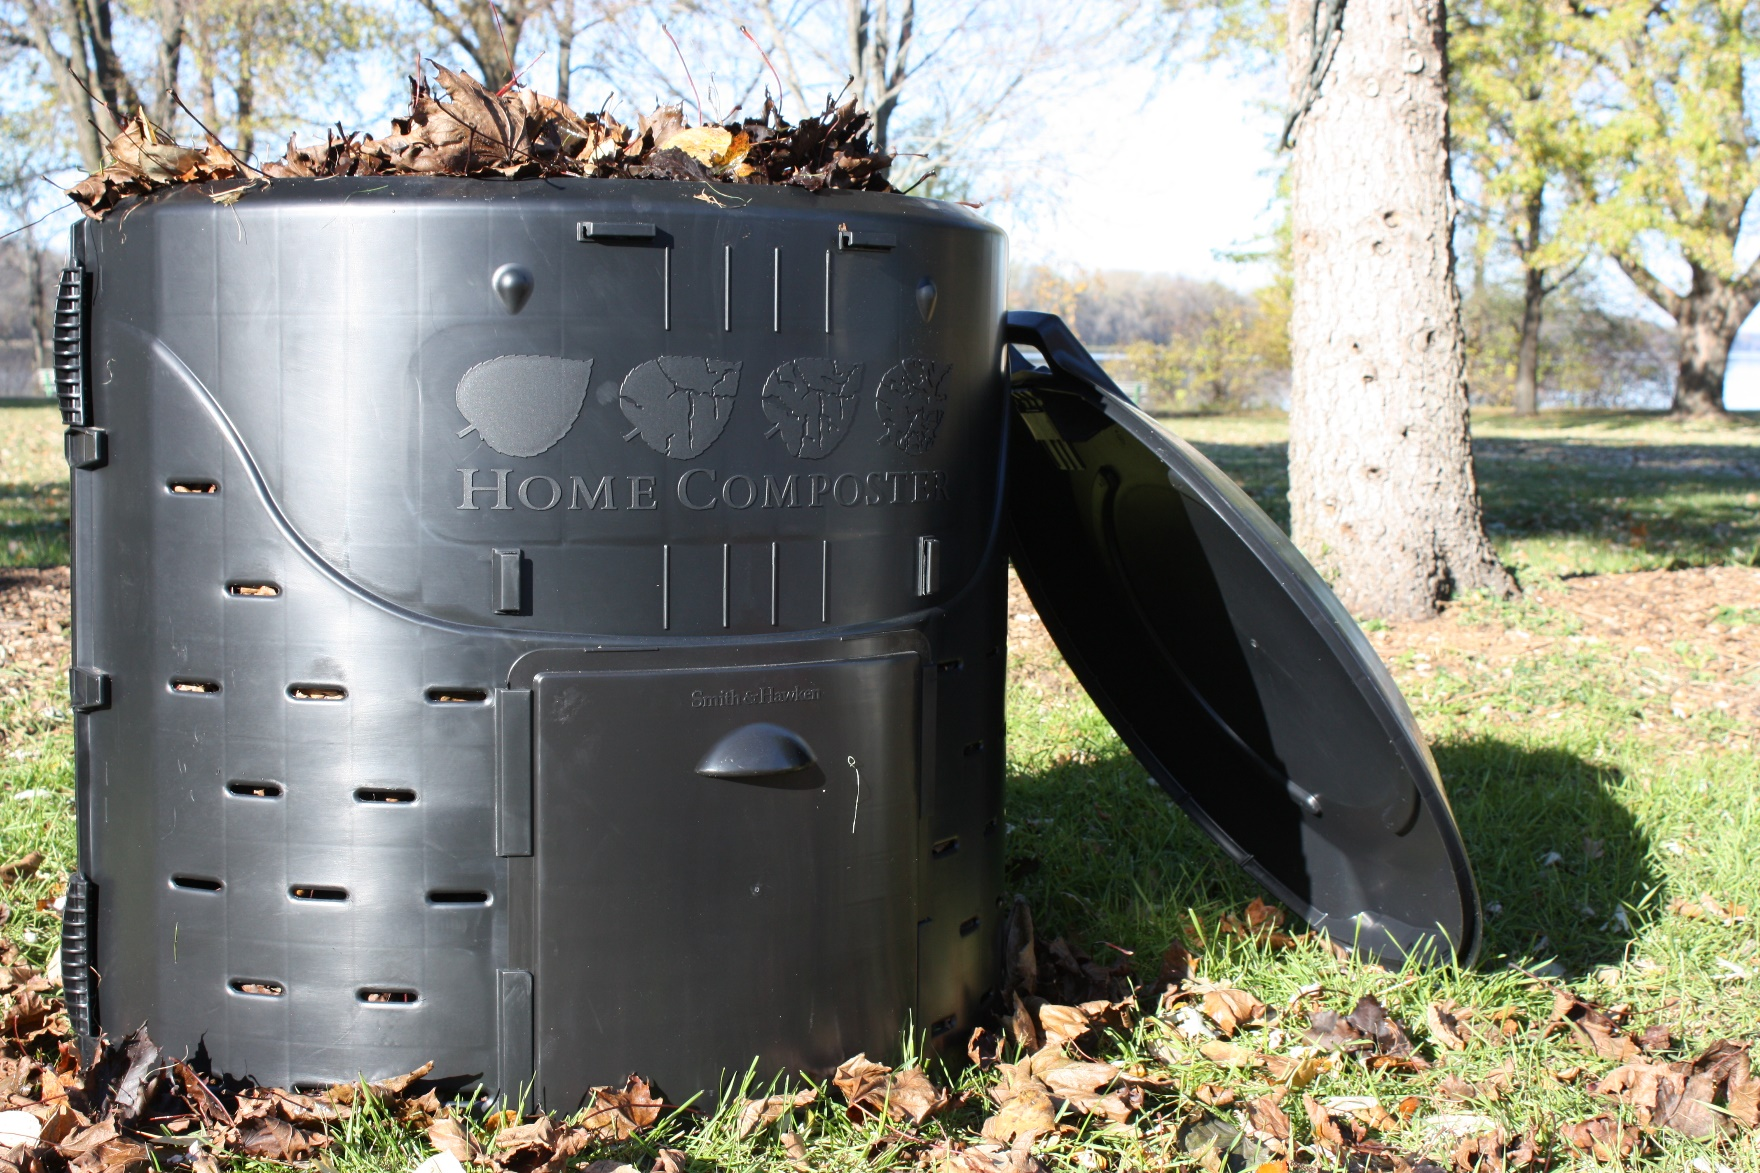 home_composter.jpg